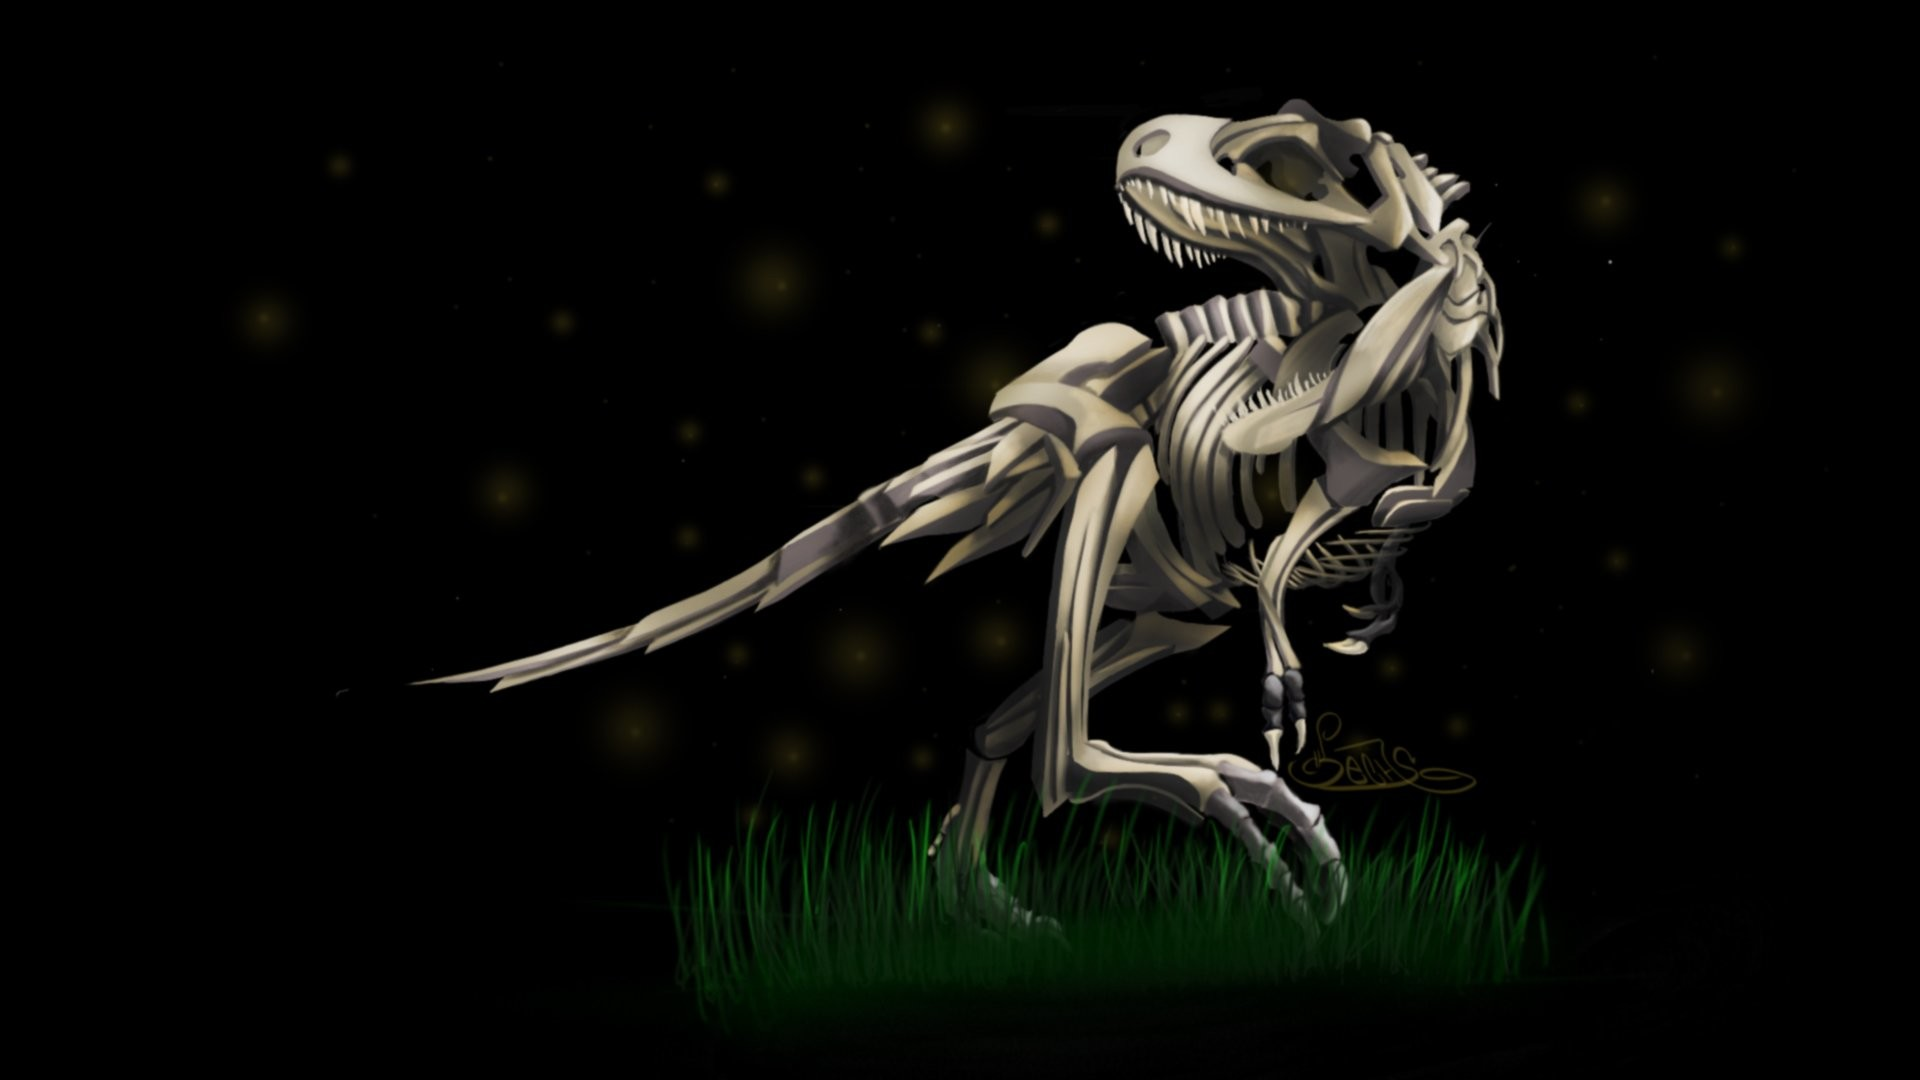 1920x1080 Dinosaurs Skeletons Tyrannosaurus Rex Wallpaper At Dark Wallpapers